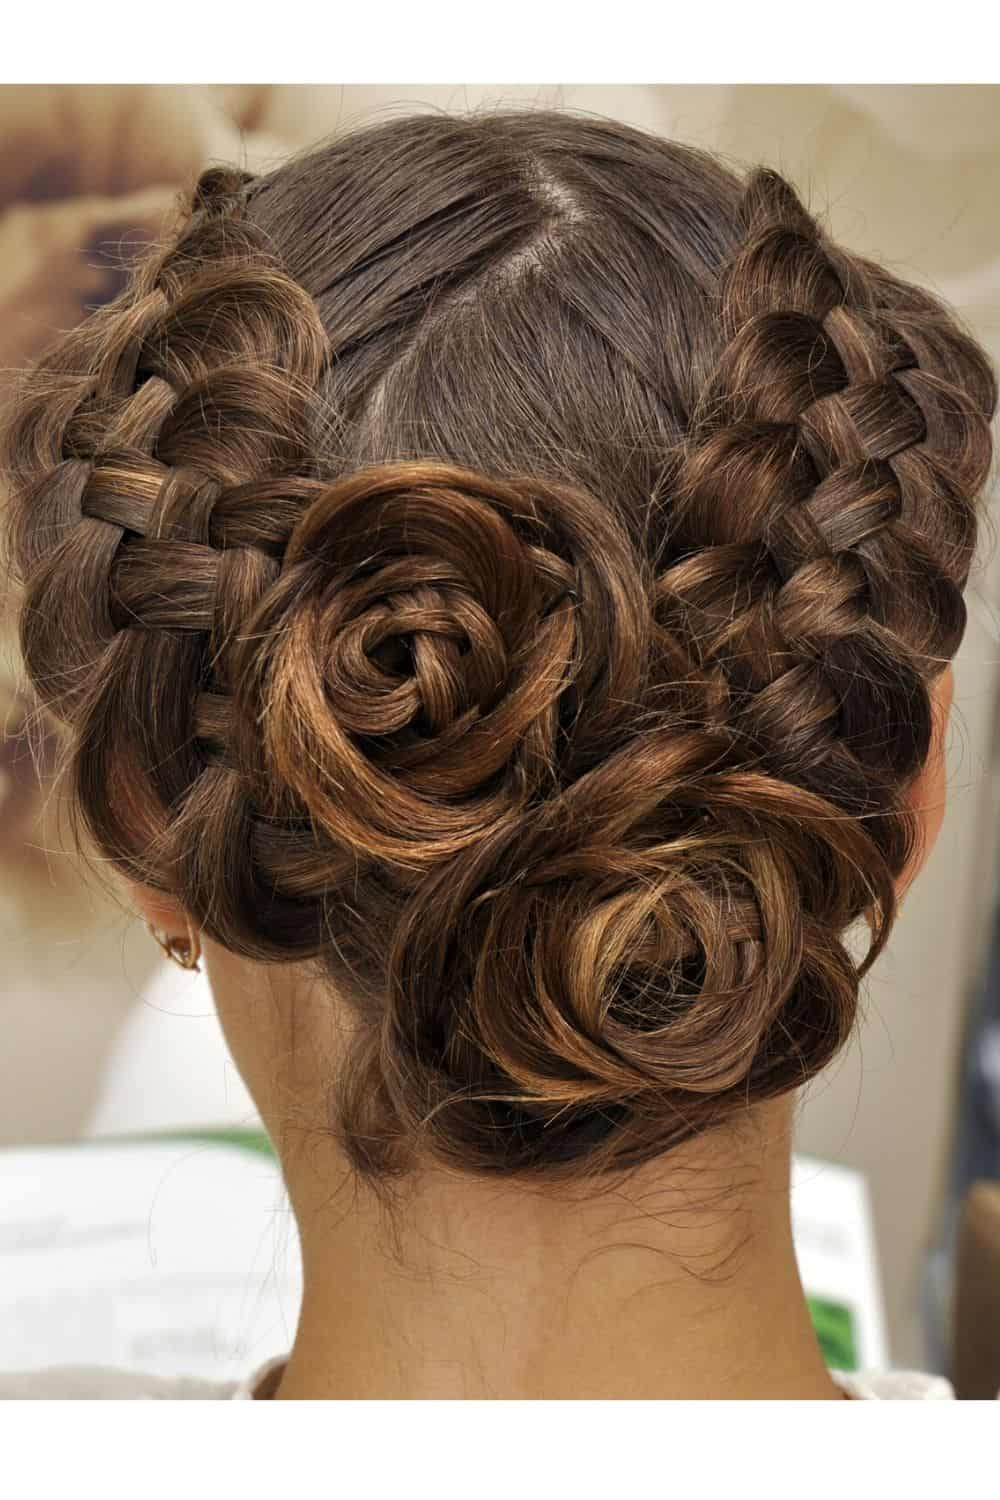 hairstyle, prom hairstyles